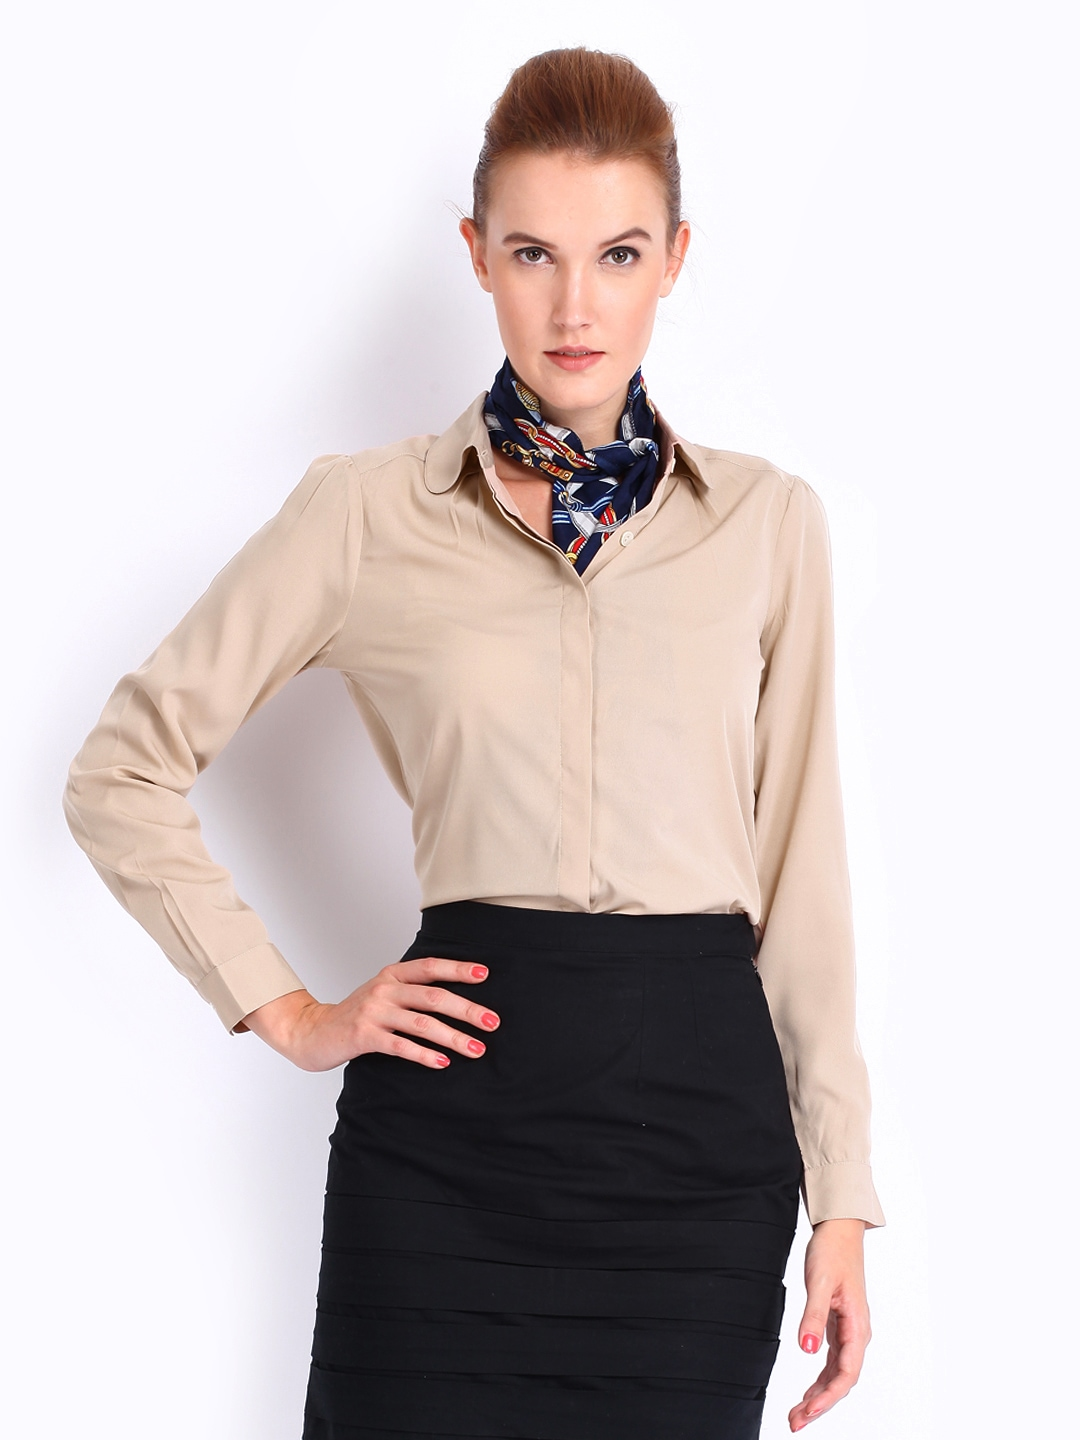 http://www.myntra.com/tops/mast--harbour/mast--harbour-women-nude-coloured-judy-top/283724/buy?src=search&uq=&searchQuery=women-tops-tees&serp=68